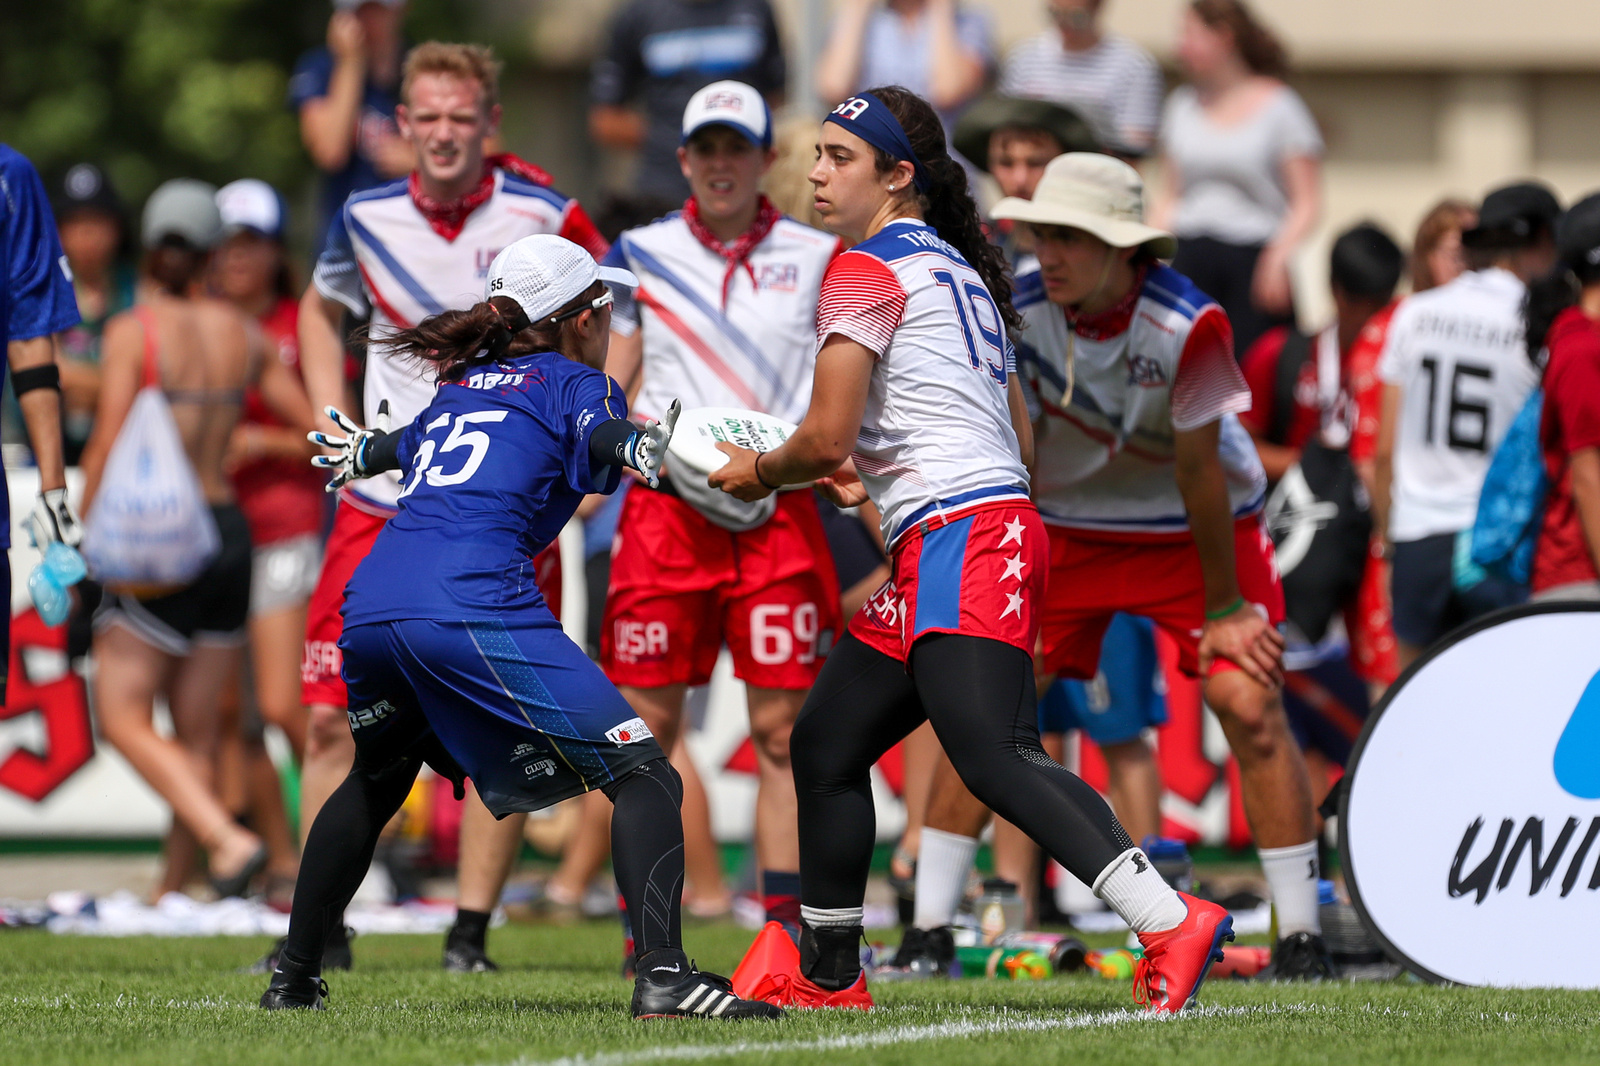 Video Thumbnail: 2019 WFDF World U-24 Championships, Mixed Gold Medal Game: USA vs. Japan